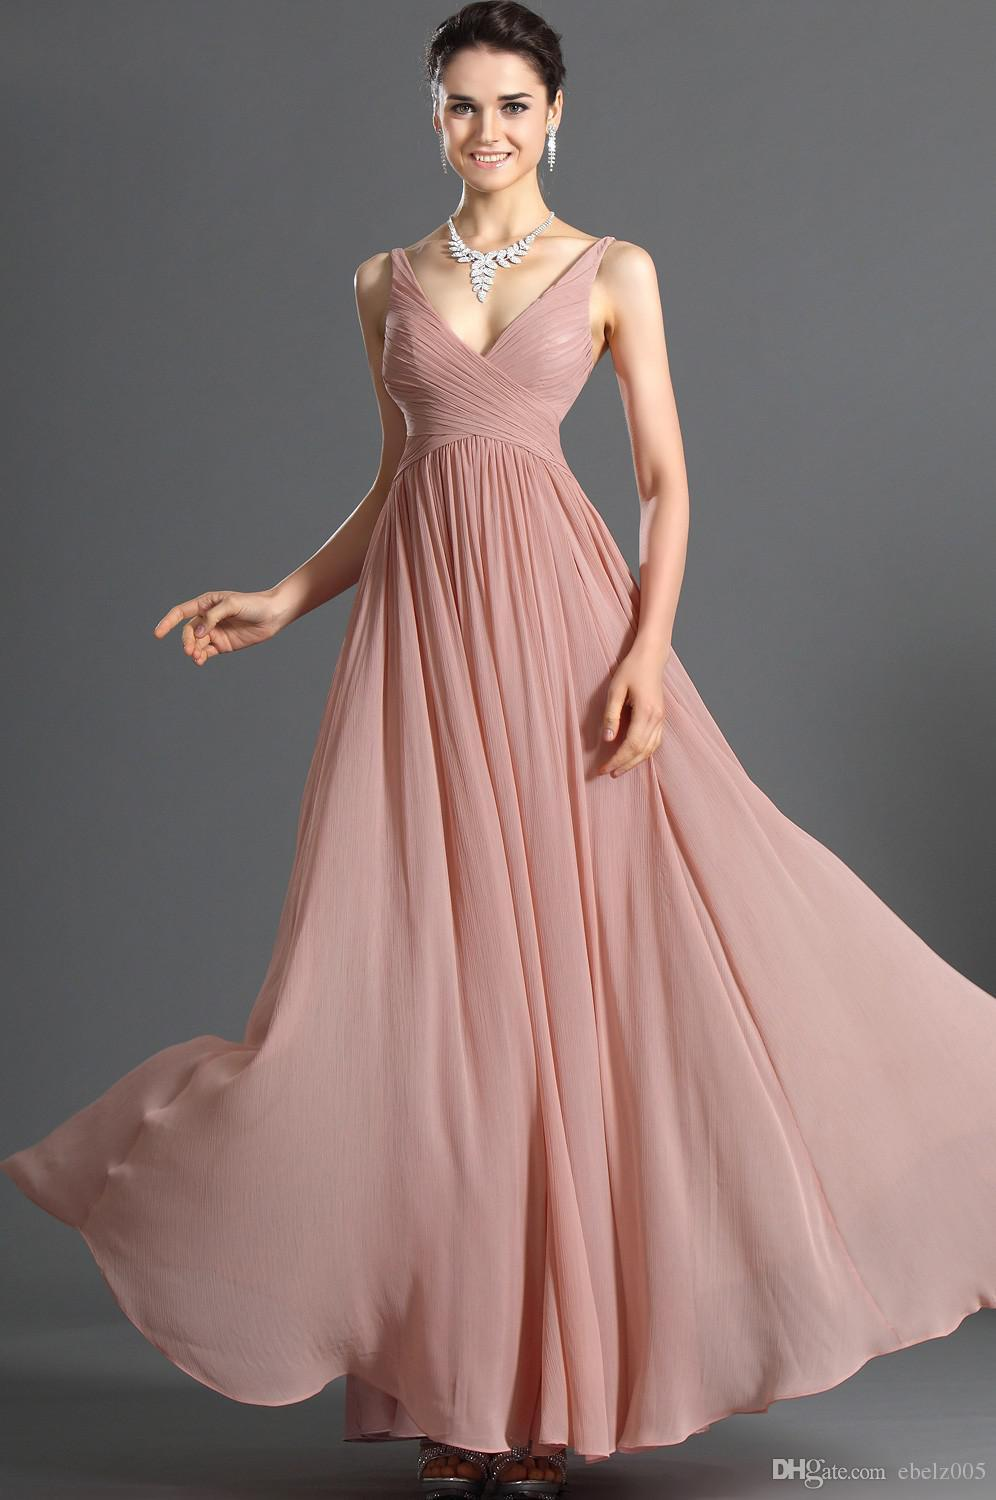 2015 vintage maternity evening dresses long gowns v neck 2015 vintage maternity evening dresses long gowns v neck sleeveless pleated chiffon a line ombrellifo Choice Image